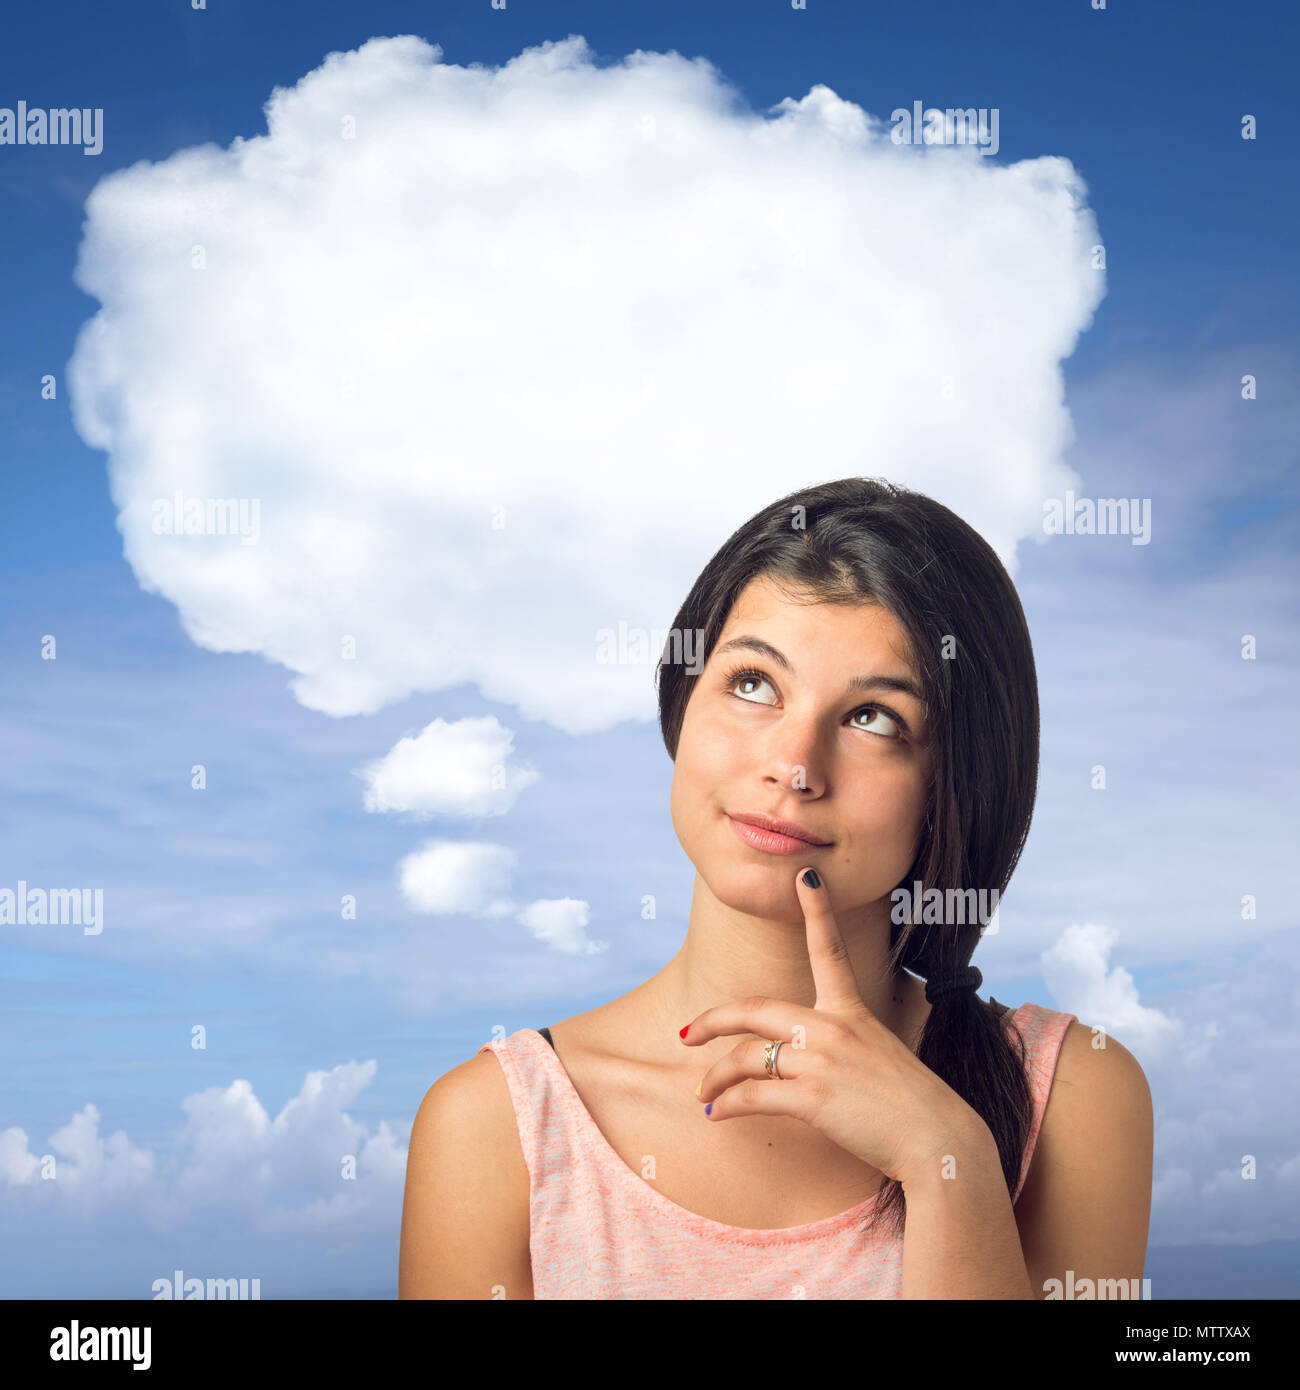 Pretty brunette girl in a thoughtful expression with a white cloud over her head - Stock Image